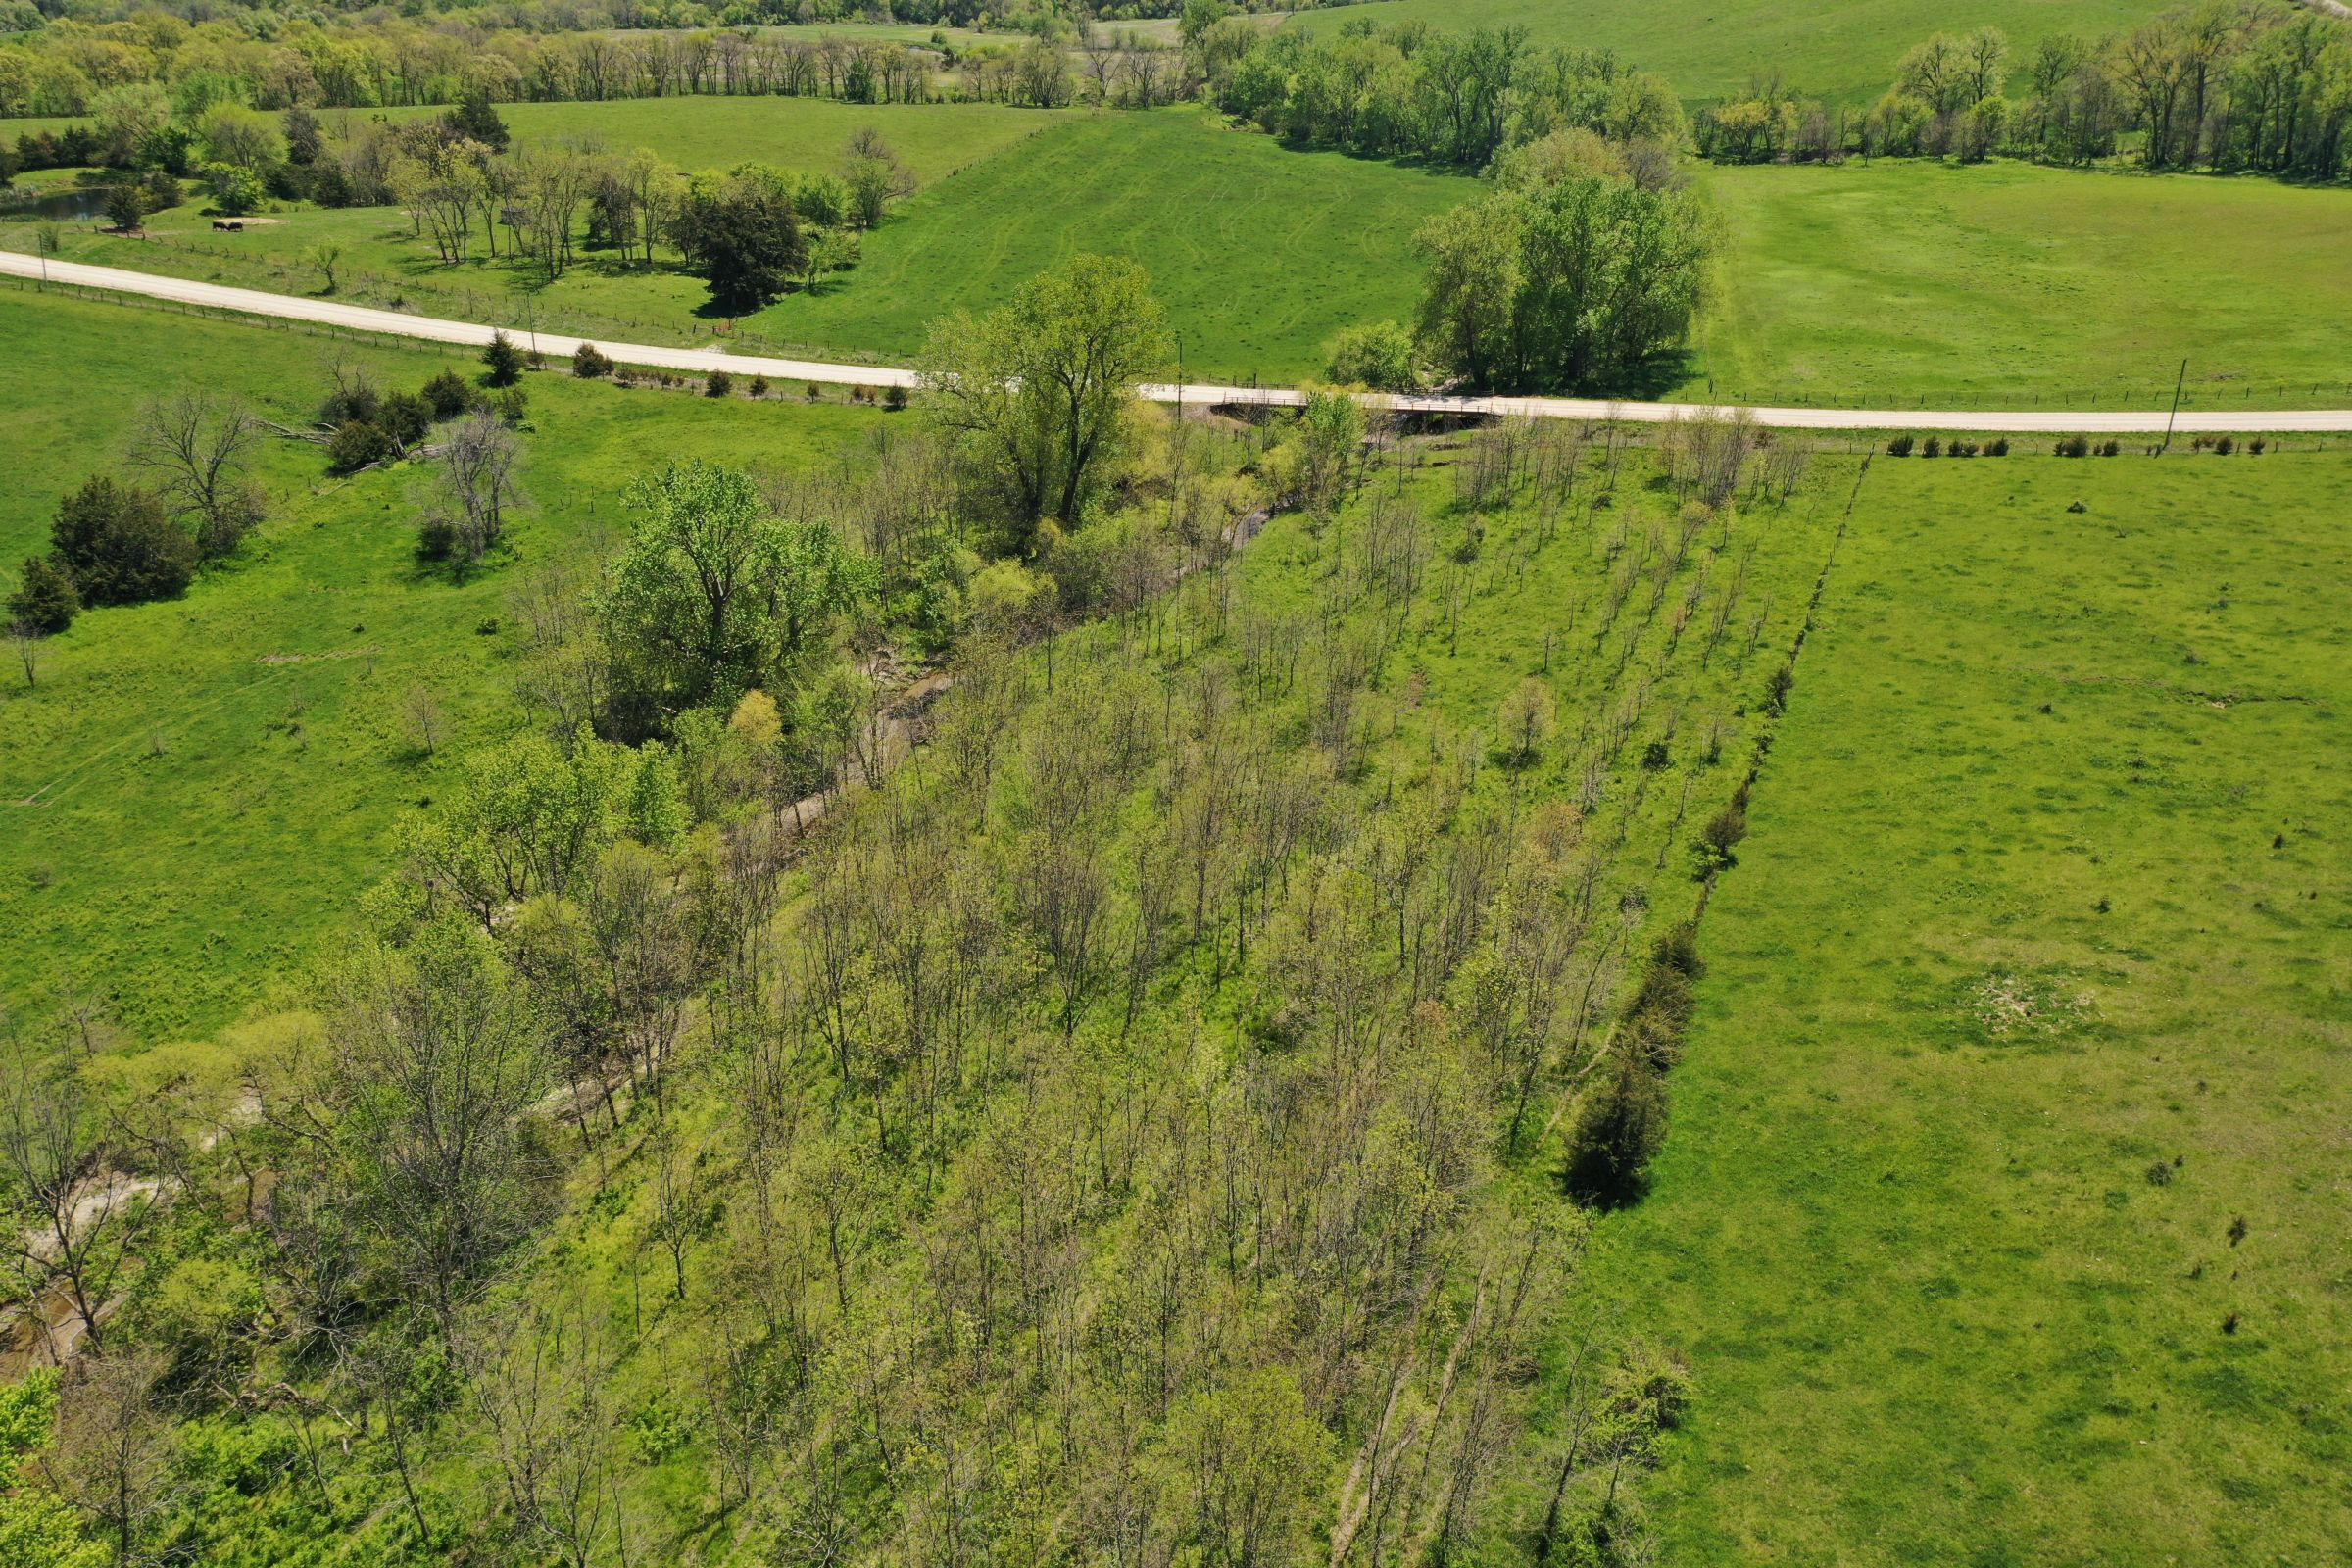 land-decatur-county-iowa-99-acres-listing-number-15525-6-2021-05-14-174325.JPG